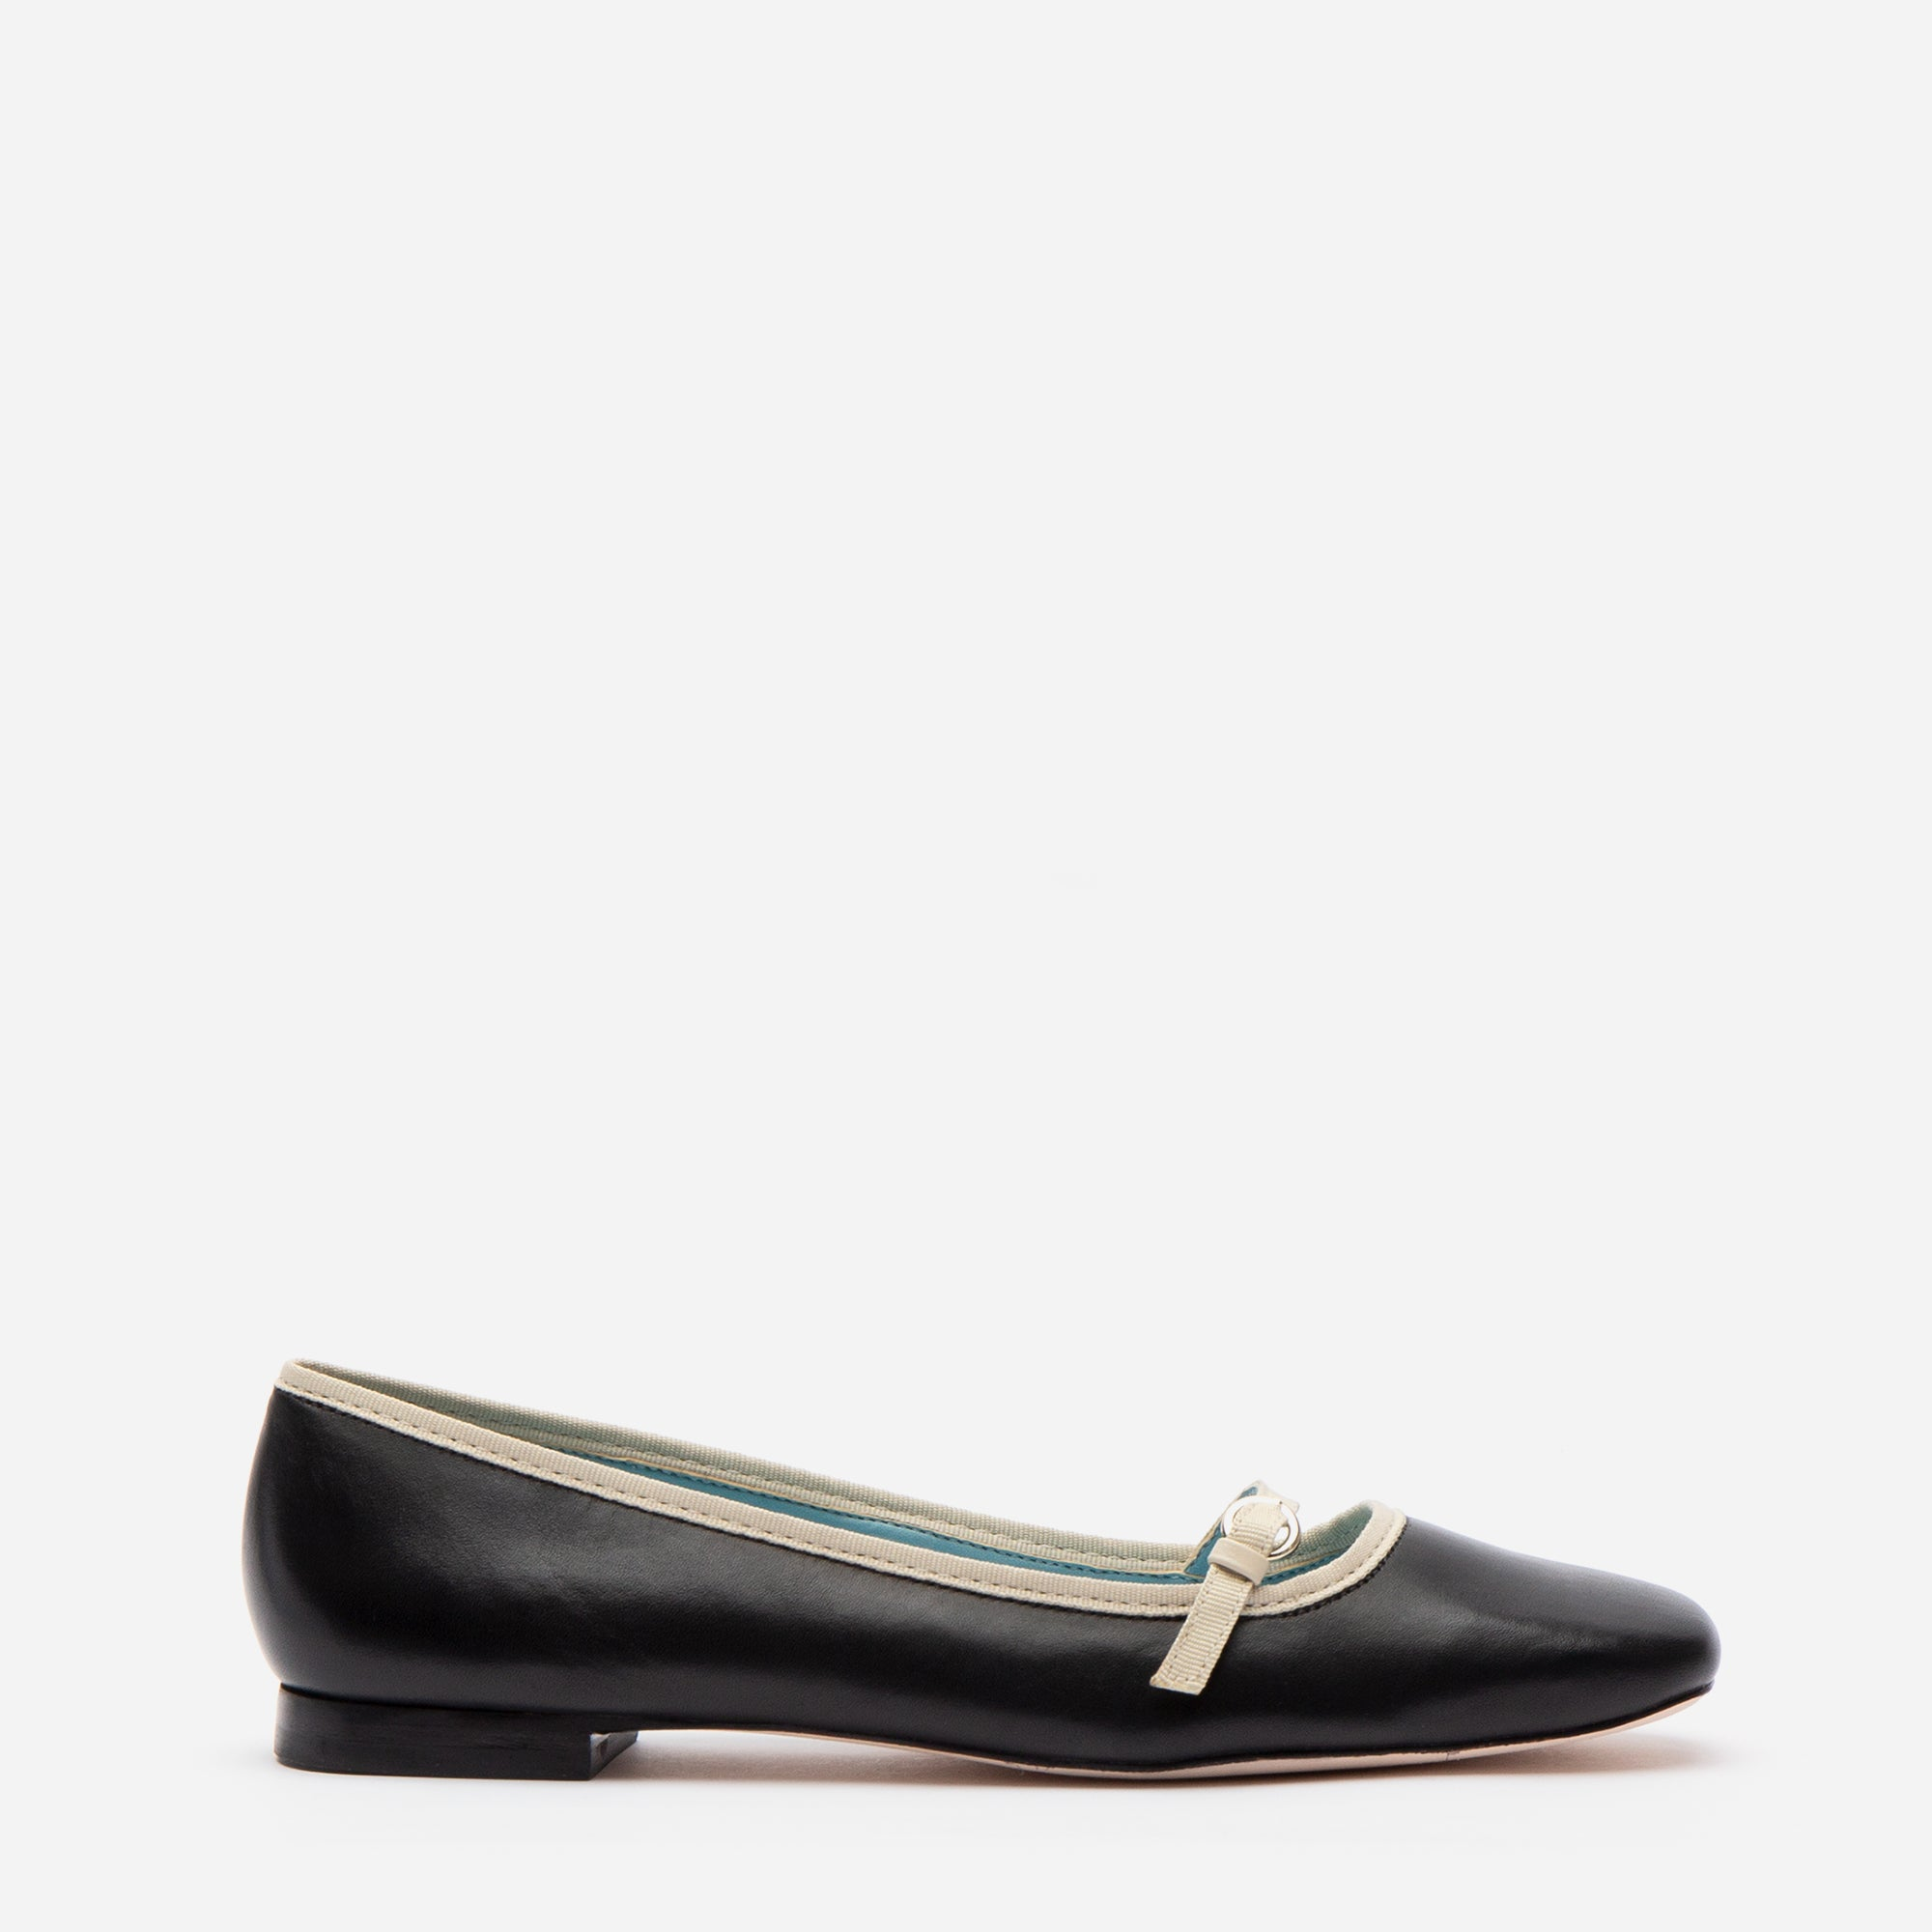 Josie Leather Flat Black Oyster - Frances Valentine